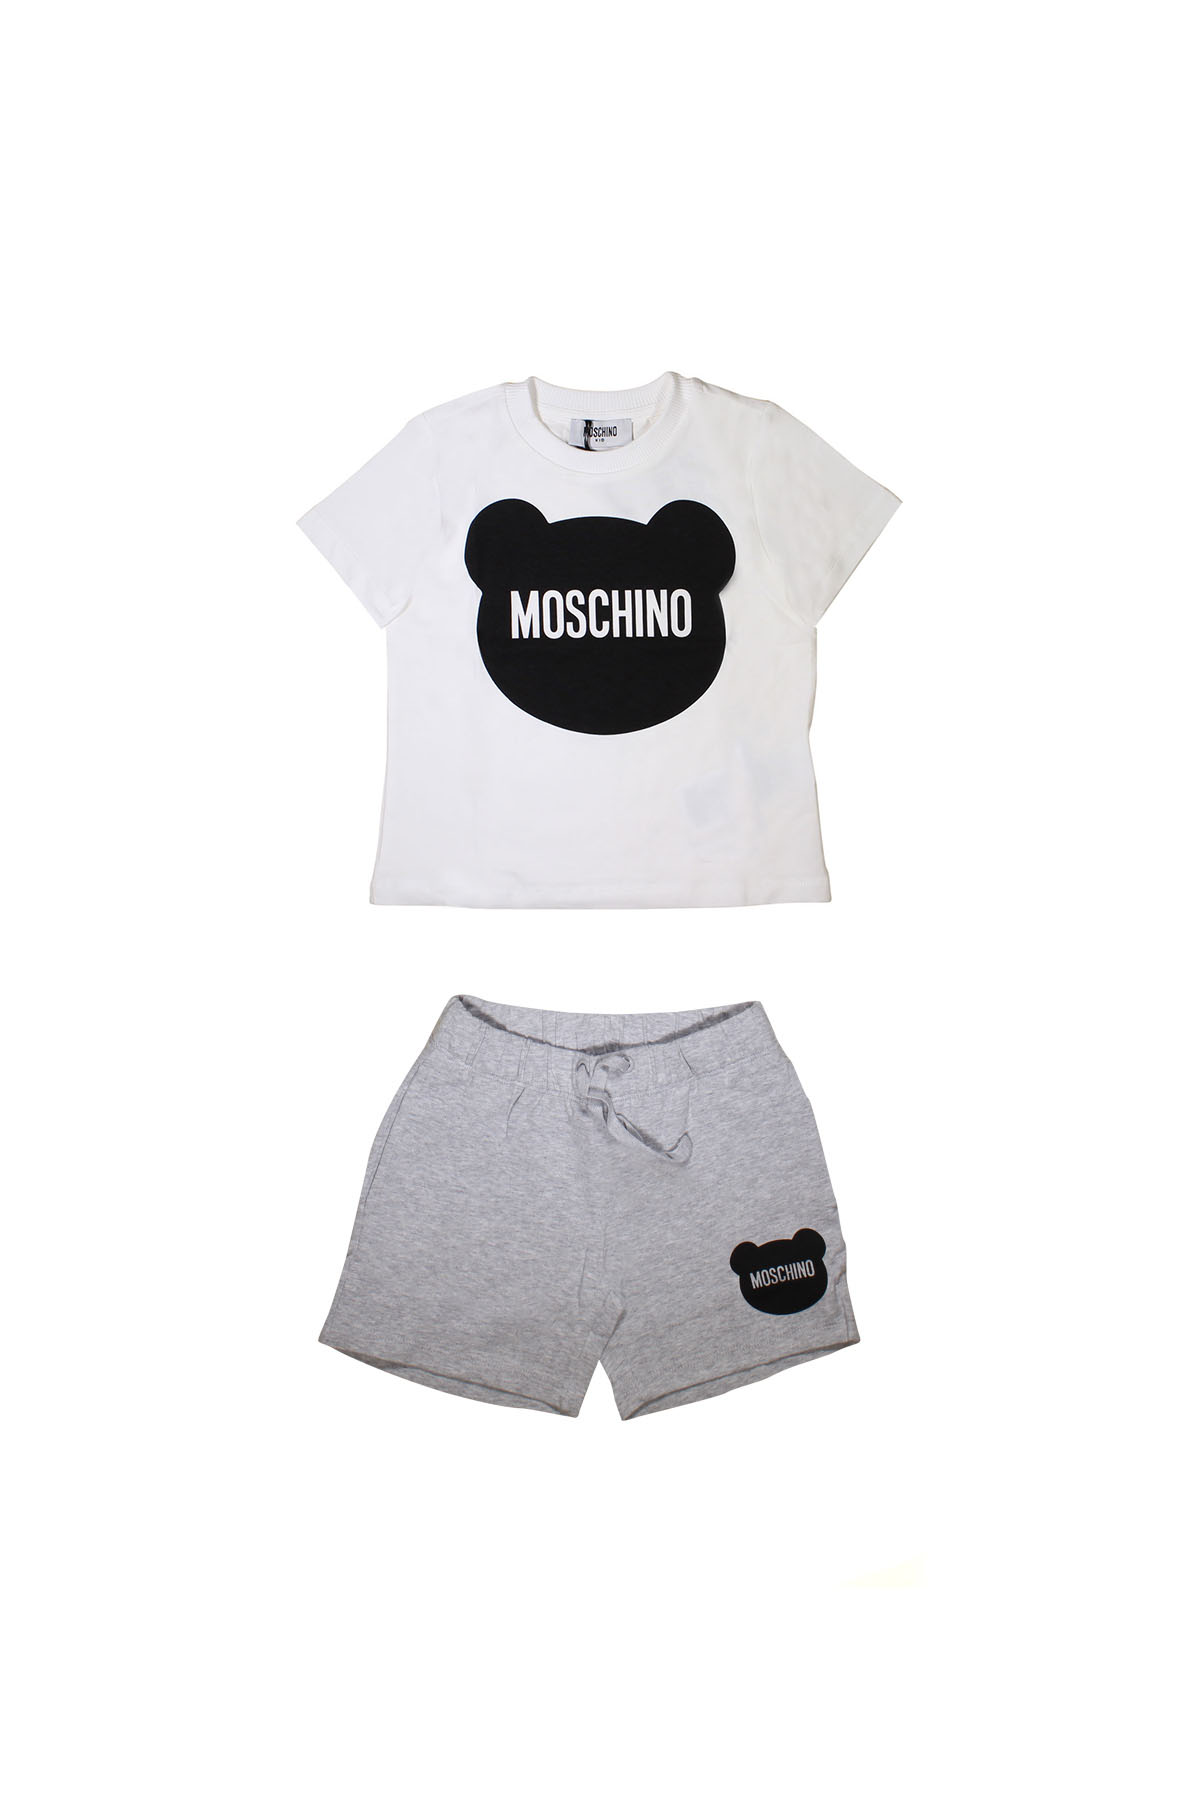 442ac8772 ... WHITE T-SHIRT MOSCHINO + SHORTS KIDS TEEN MOSCHINO KIDS | 8 |  HMK01CLBA00T84011 ...